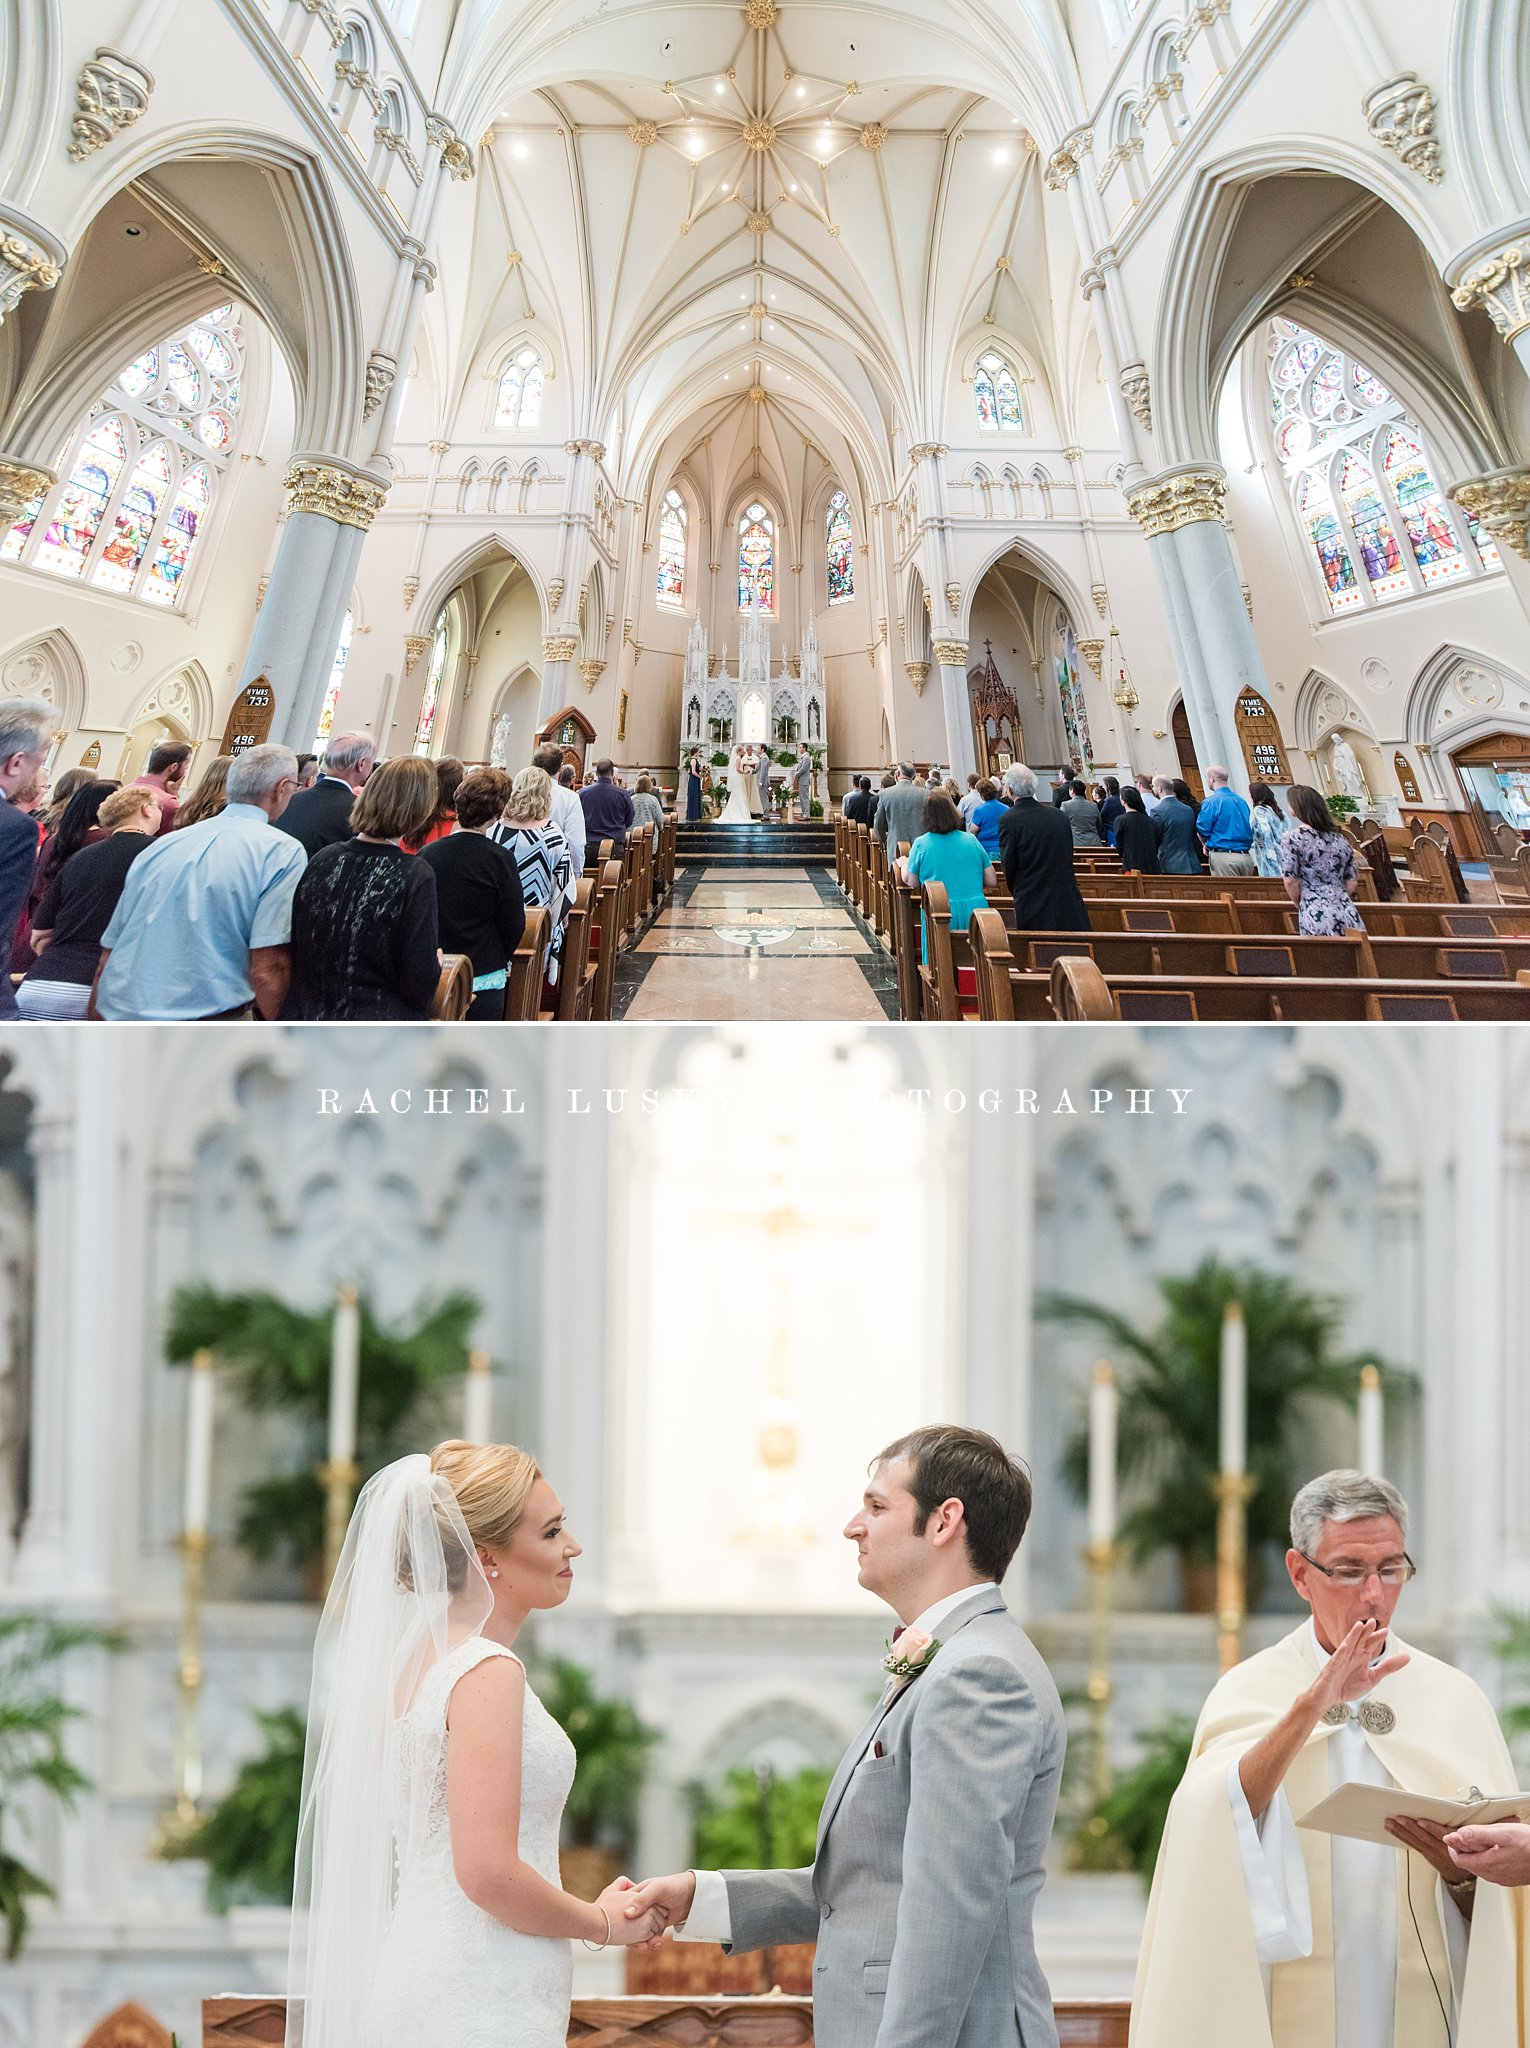 erie pa wedding ceremony, erie pa wedding photographer